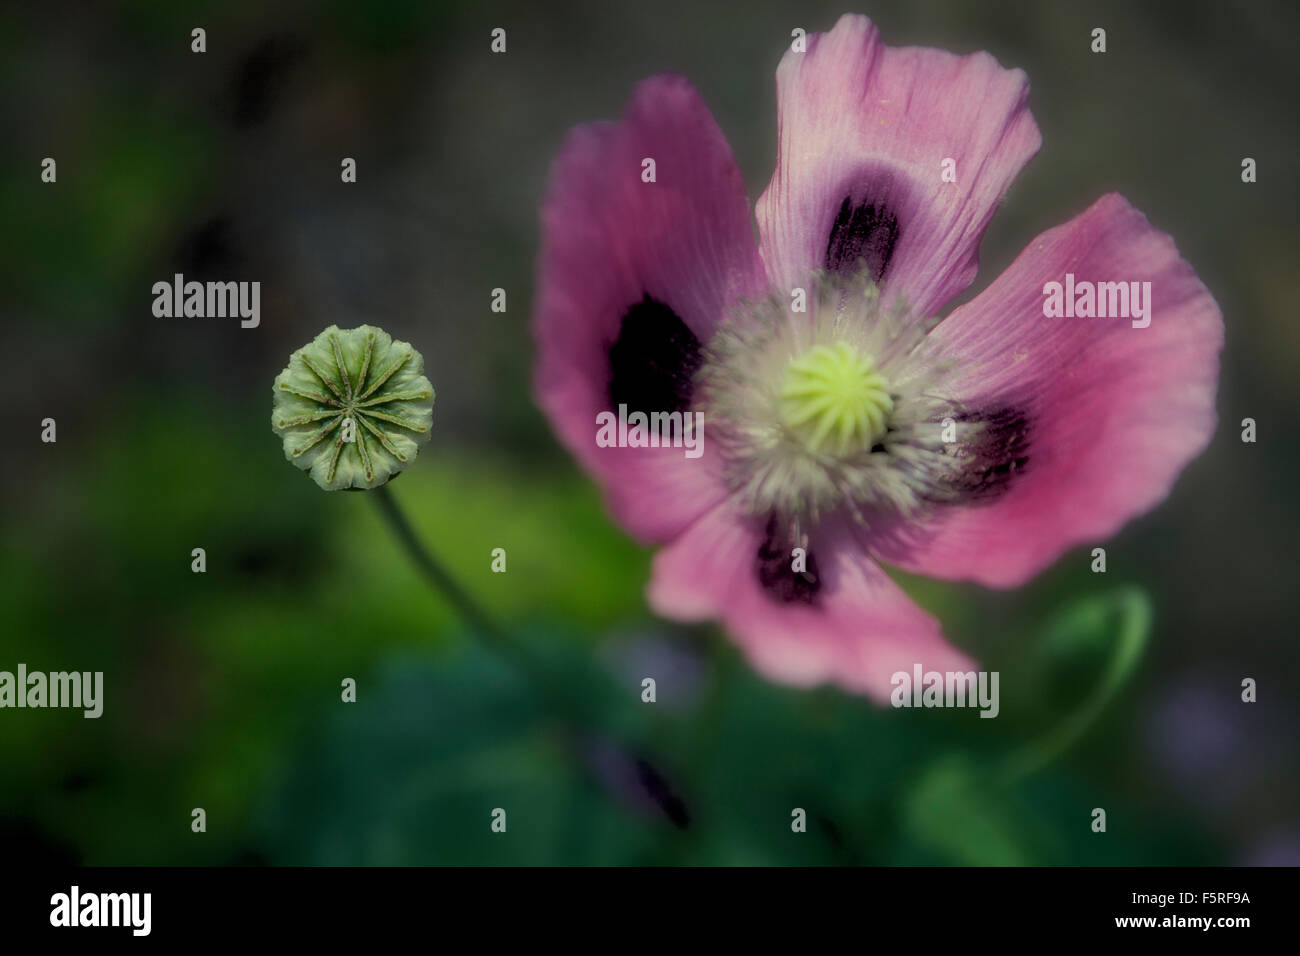 Pink Poppy Flower And Seed Pod Stock Photo 89642038 Alamy